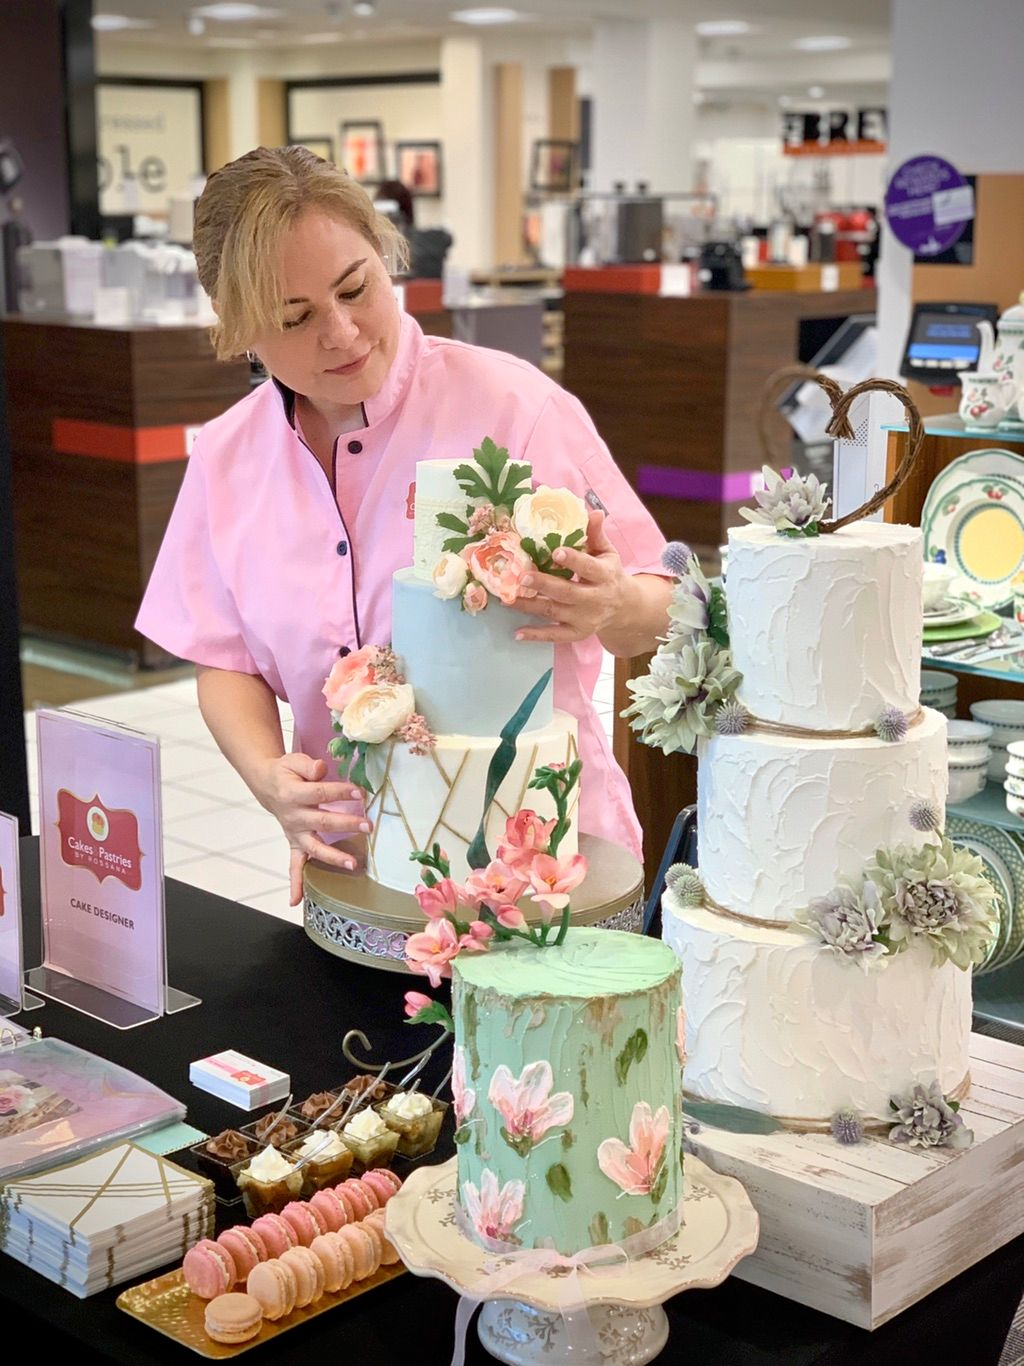 Cakes&Pastries by Rossana